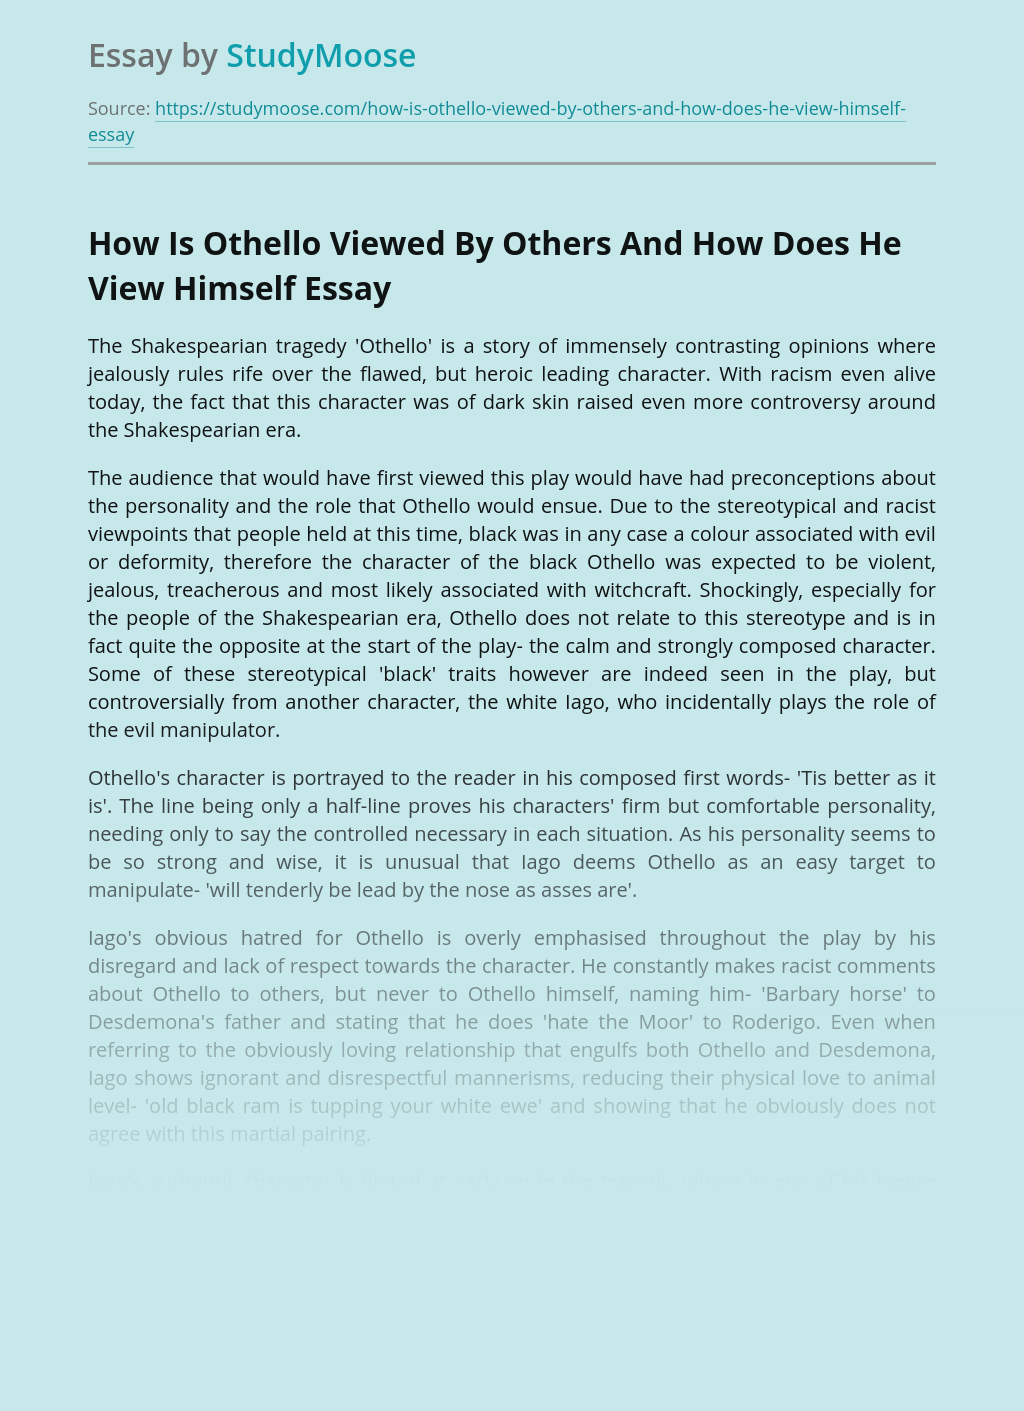 How Is Othello Viewed By Others And How Does He View Himself